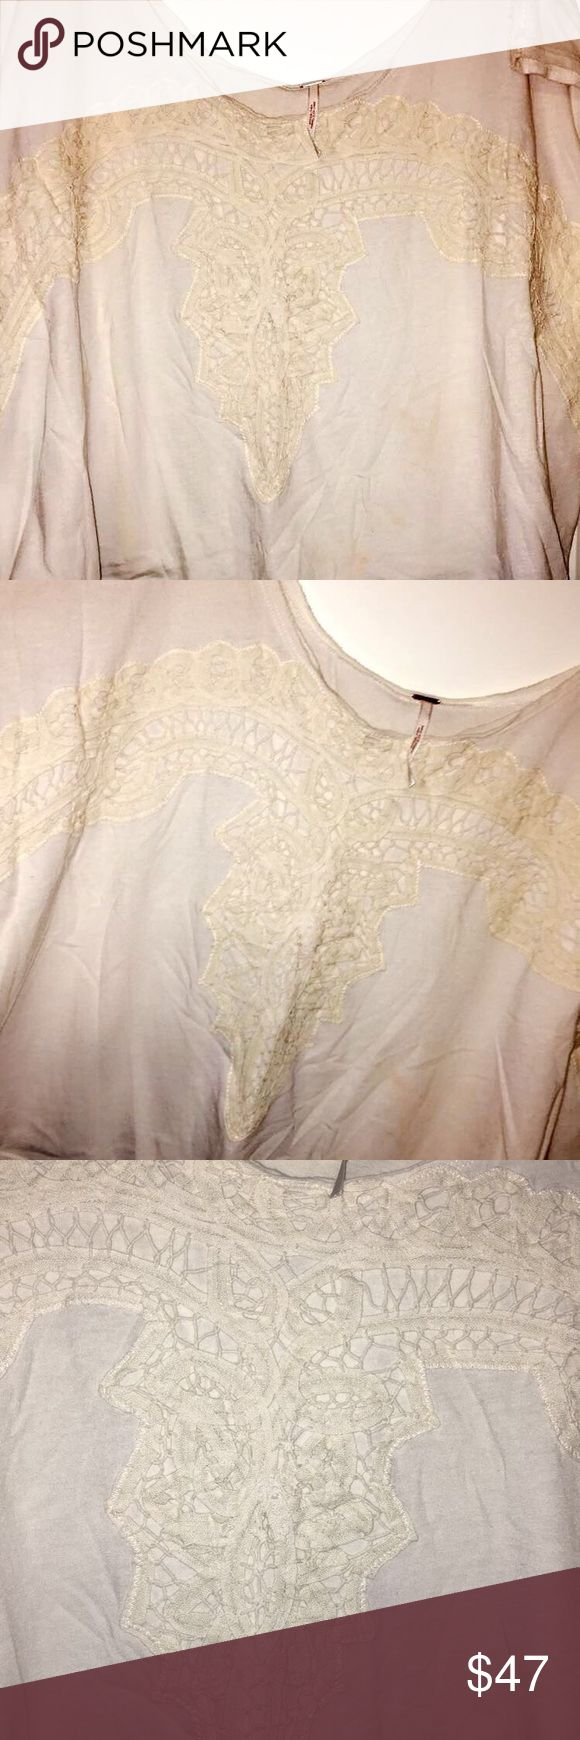 Free People Slouchy Lace-Detailed Tee This Free People slouchy-fit tee is perfect to throw on with jeans or shorts. It's a tan/cream color. It has lace detail on the front.  Women's size medium. Fits more short than long. Could possibly go off one shoulder casually.  Worn twice. In great condition! Free People Tops Tees - Short Sleeve